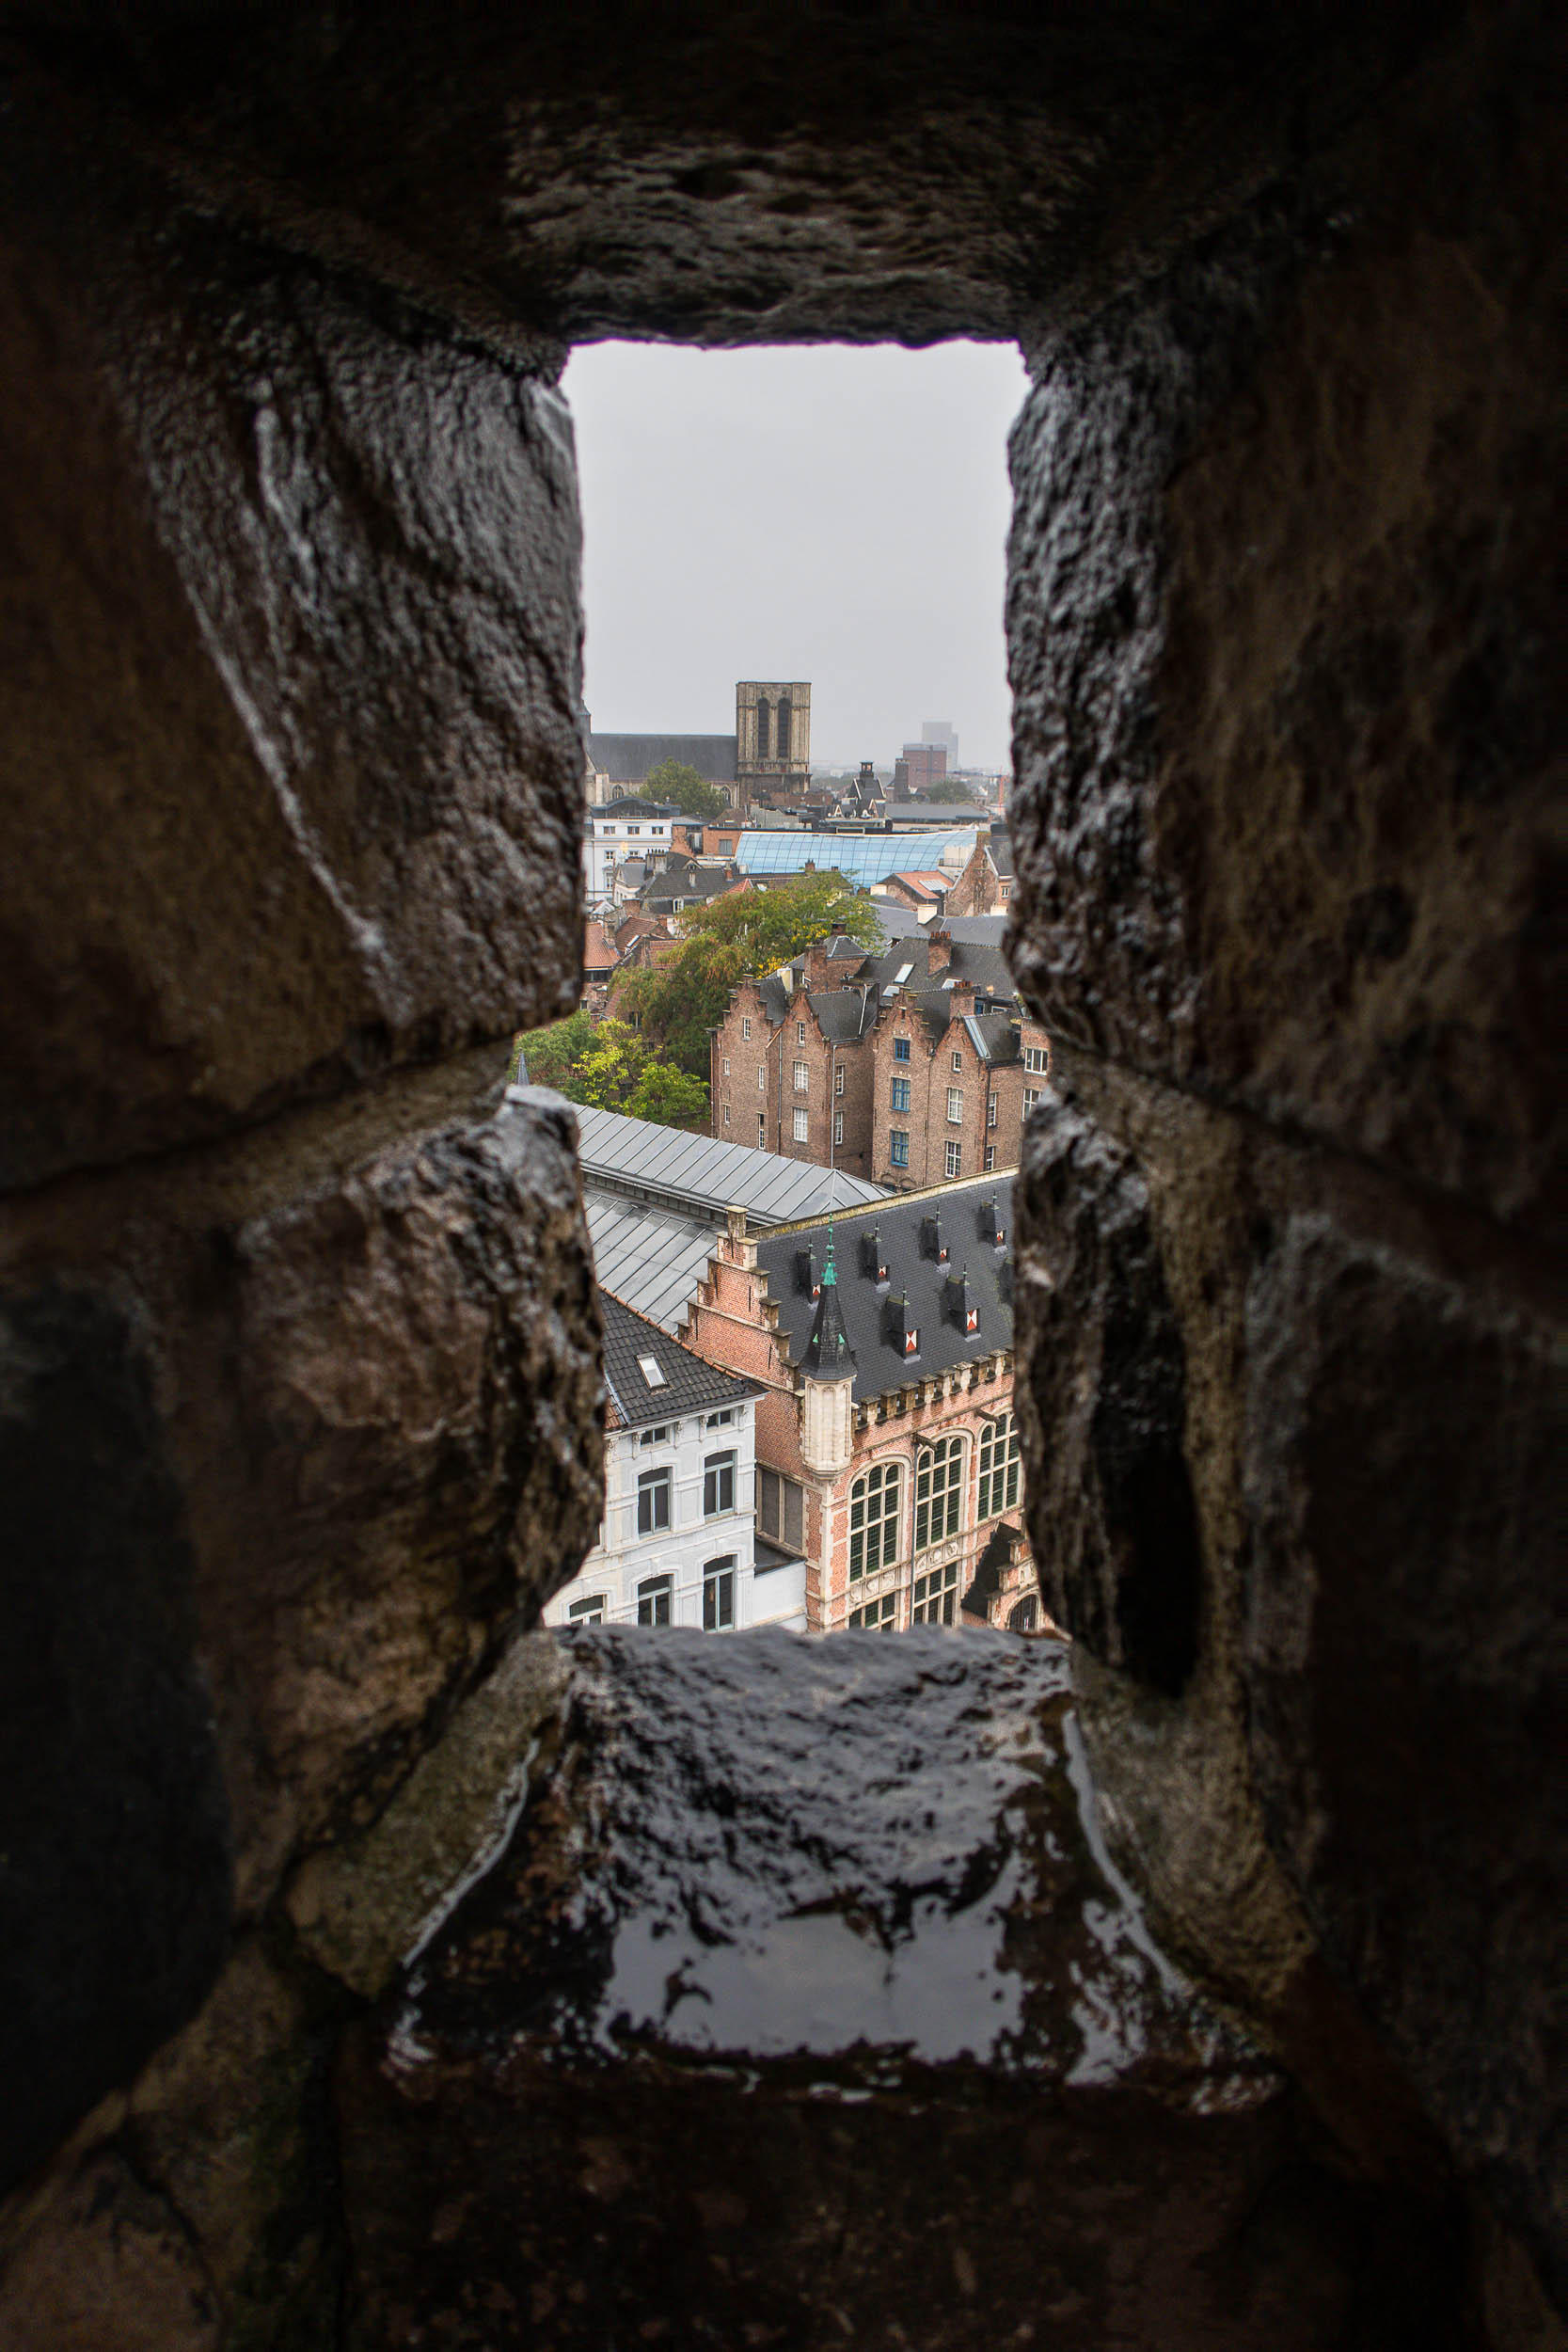 The Castle of Courts - a MUST see in Ghent, Belgium